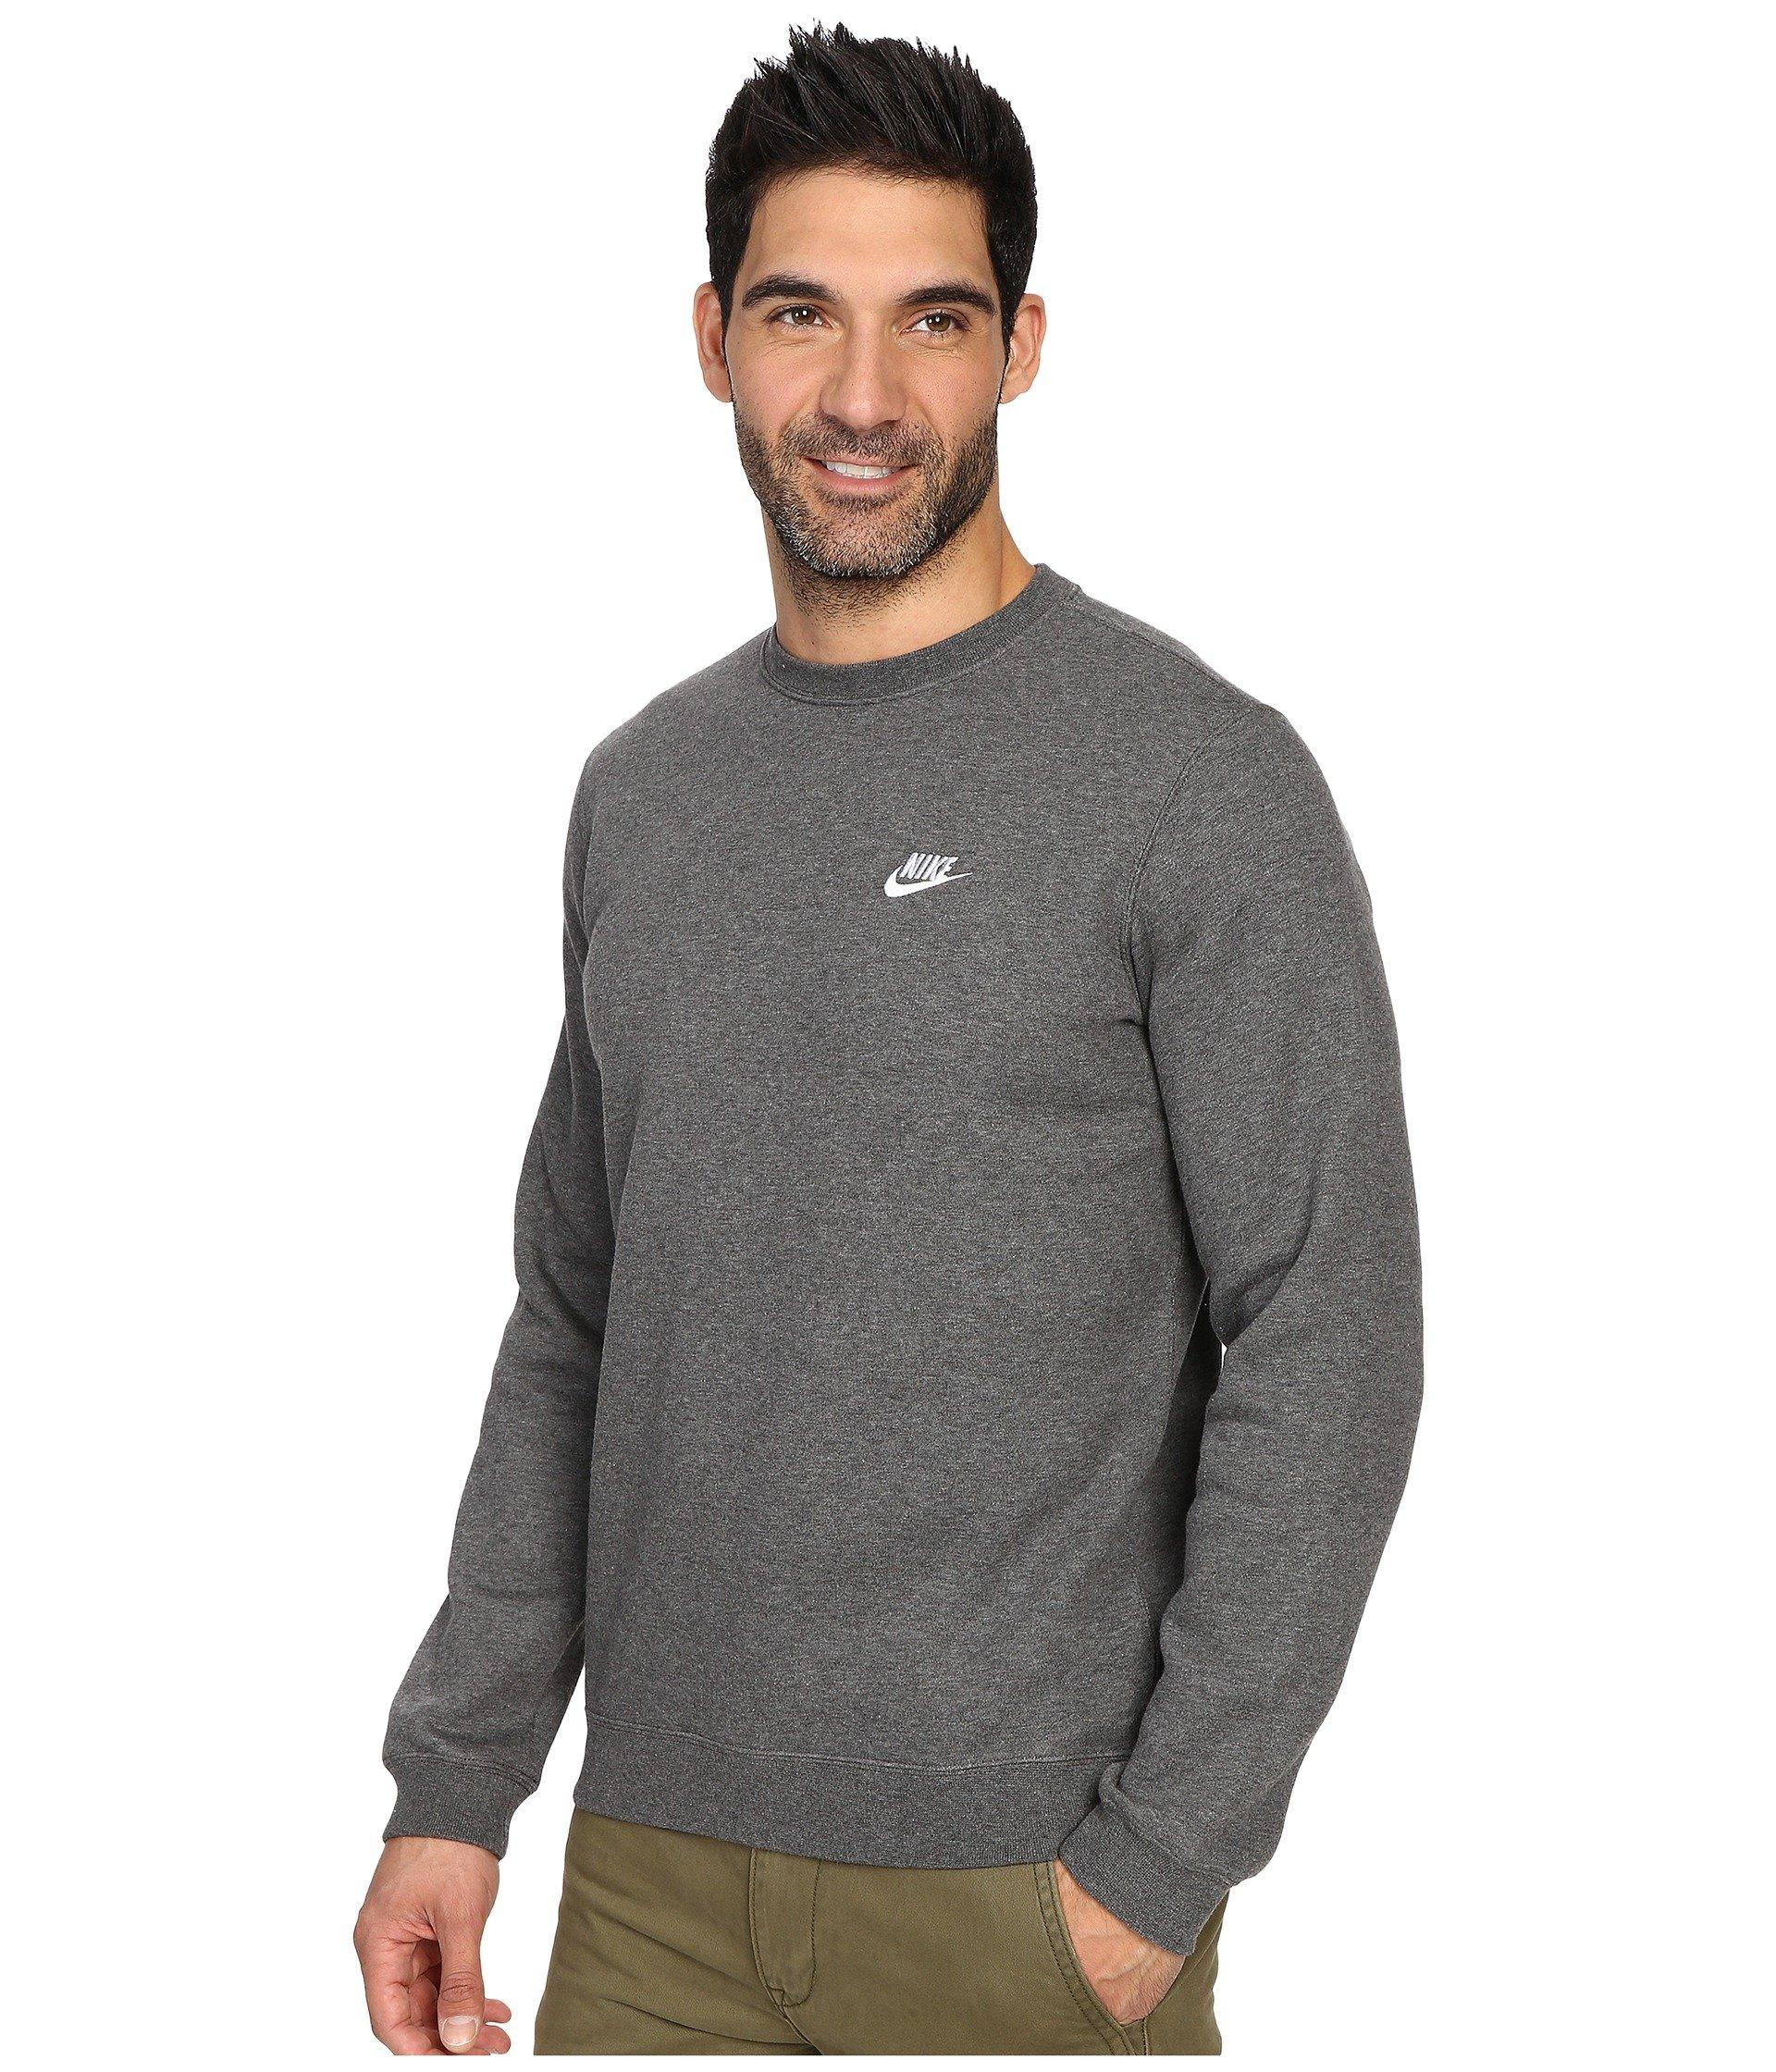 b65c3081adc437 Lyst - Nike Club Fleece Pullover Crew in Gray for Men